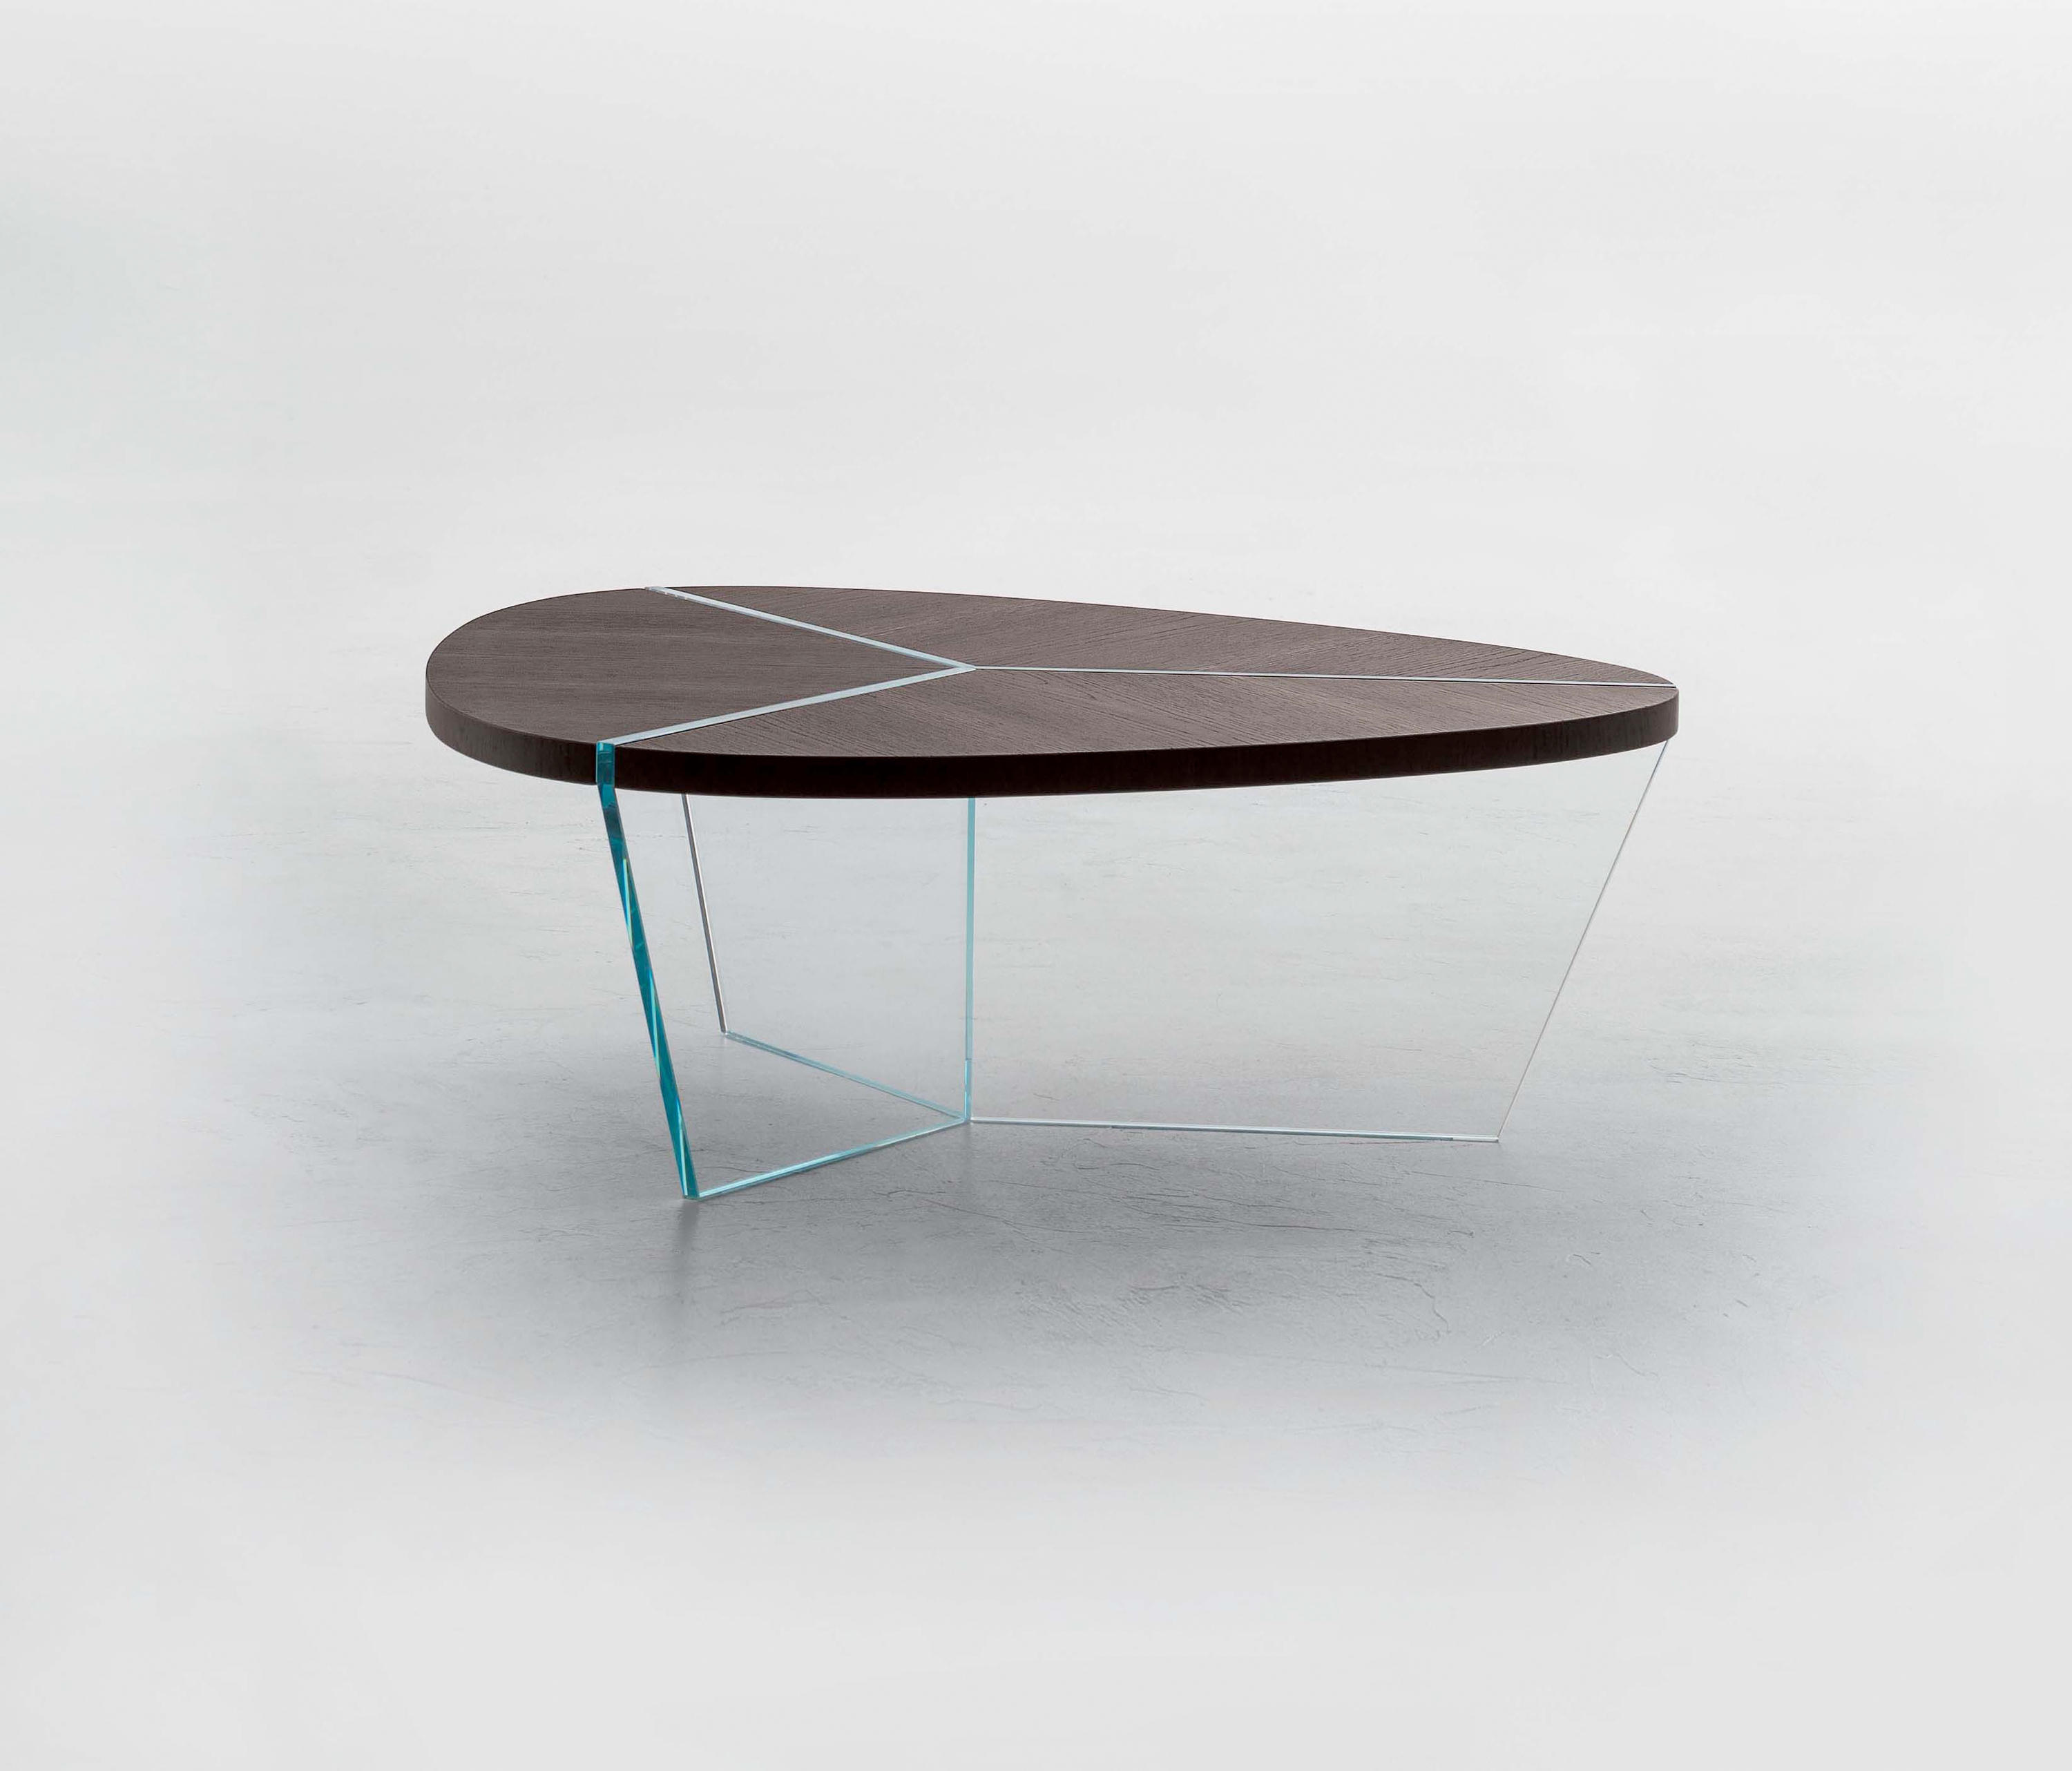 SMALL TABLES - Research and select Tonin Casa products online ... - Aida | Coffee tables | Tonin Casa